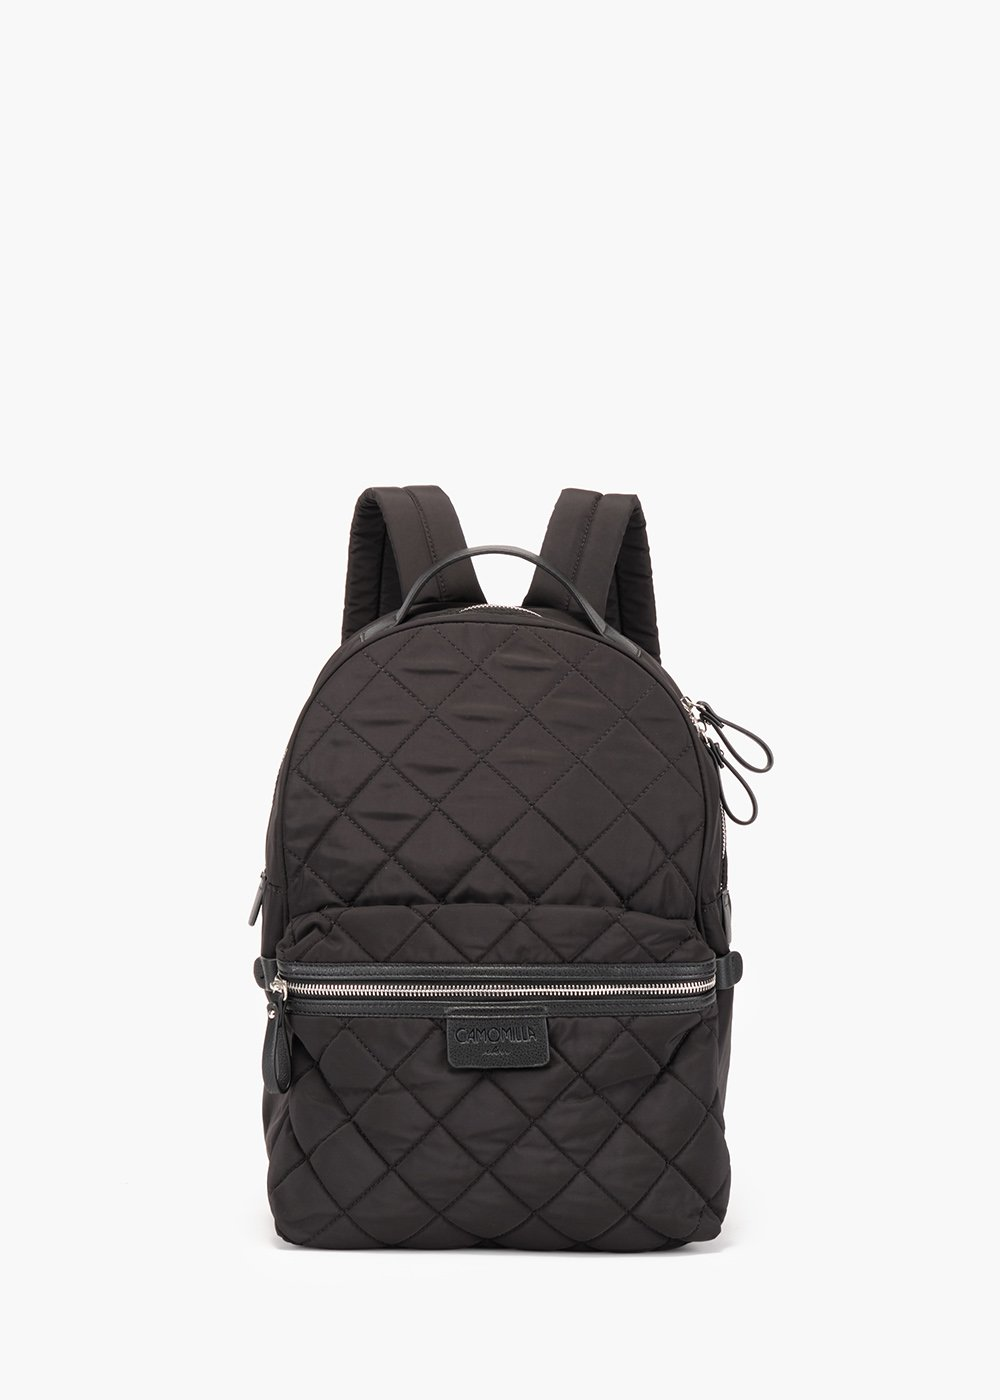 Beckie nylon backpack with matelassé topstitching